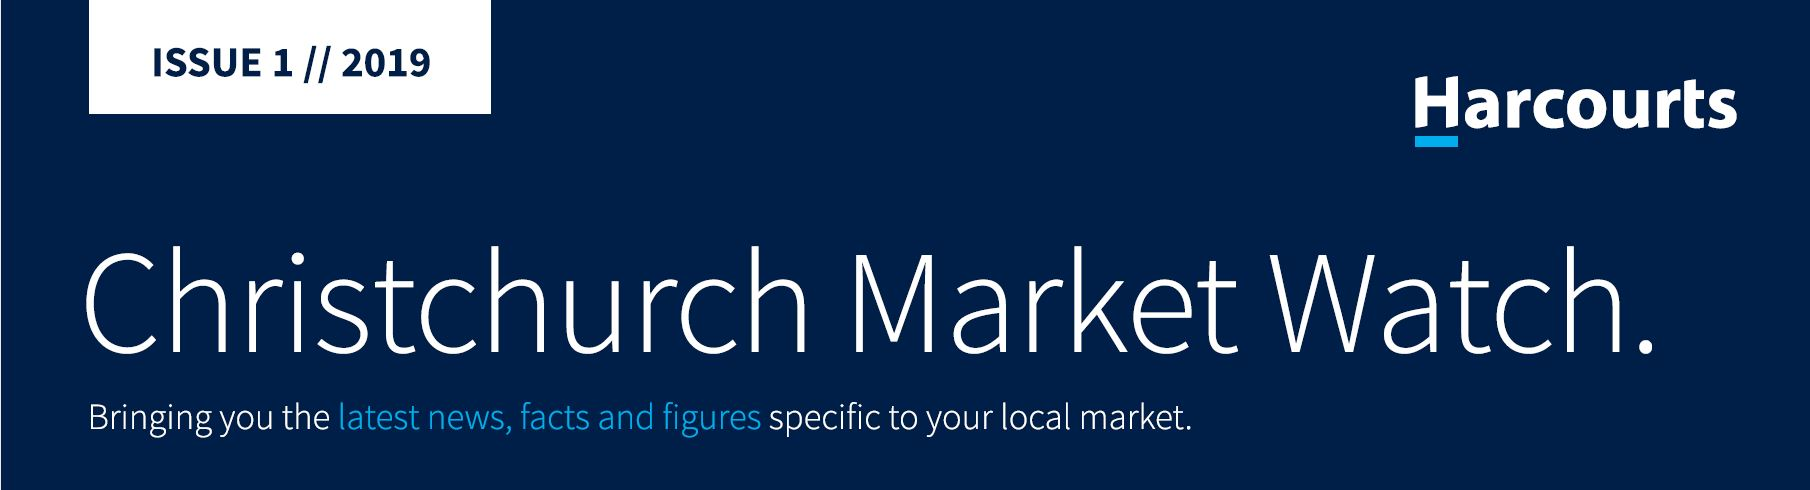 Christchurch Market Watch December 2018